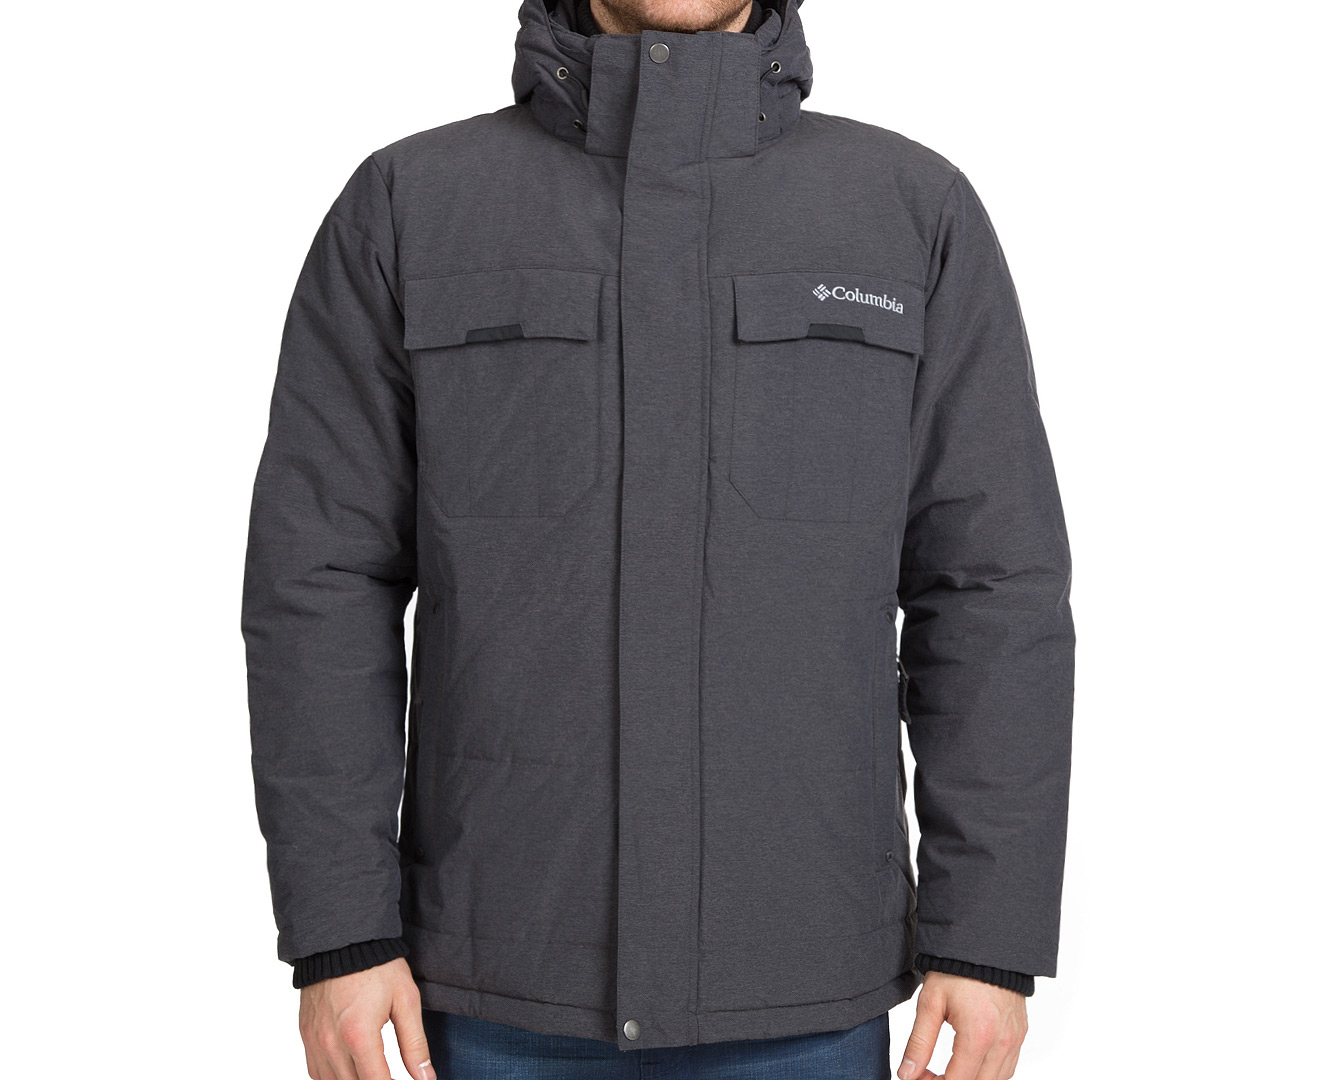 mount tabor men Shop the best selection of men's jackets at backcountrycom, where you'll find premium outdoor gear and clothing and experts to guide you through selection.